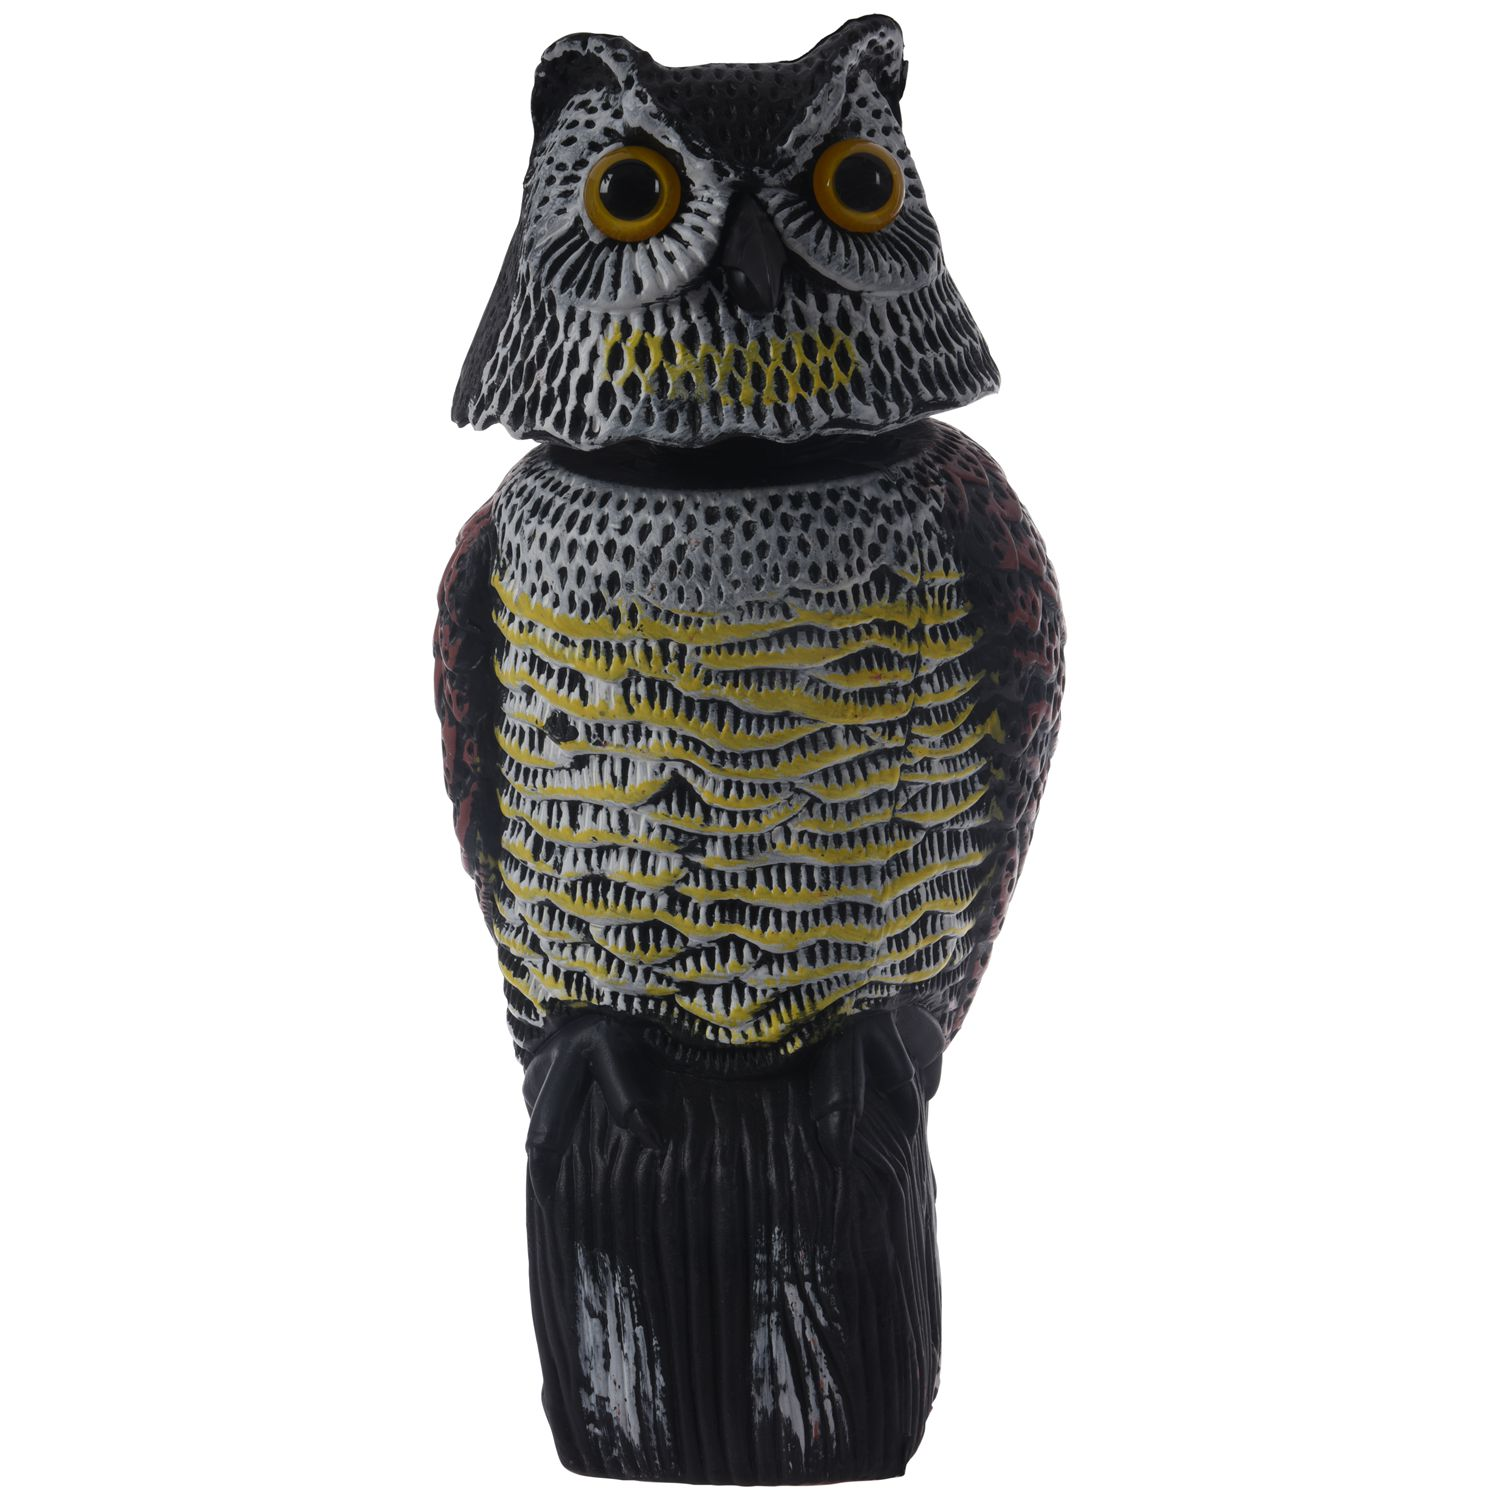 Large Realistic Owl Decoy Rotating Head Weed Pest Control Crow ScarecrowLarge Realistic Owl Decoy Rotating Head Weed Pest Control Crow Scarecrow